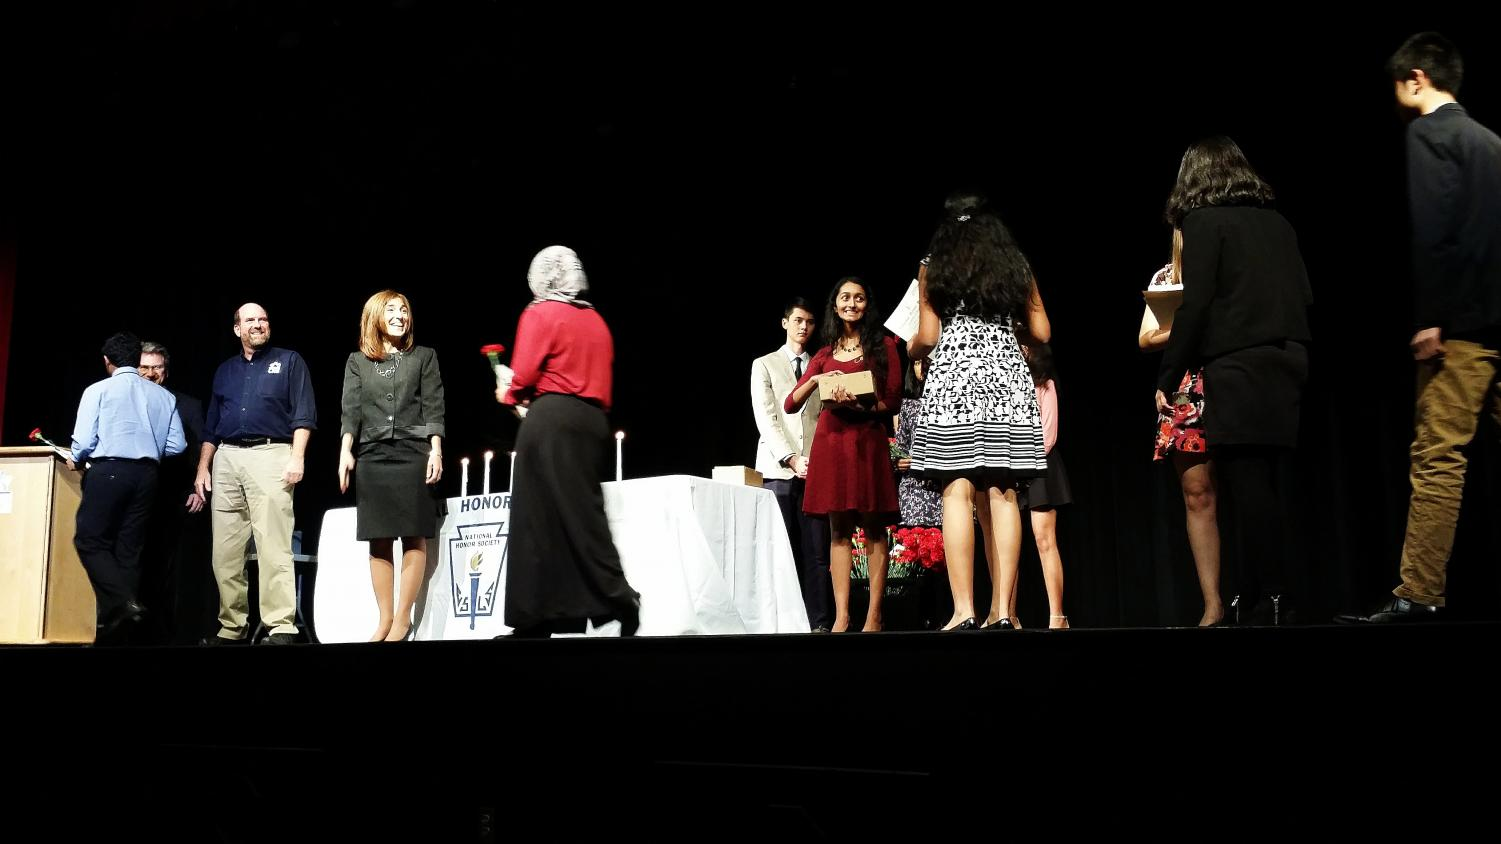 """Crossing the stage holding roses and certificates, students shake hands with speakers and officers. The inductees were sworn into the society during the evening ceremony. """"We just got inducted,"""" junior Ritika Shrivastav said. """"I'm looking forward to it."""""""